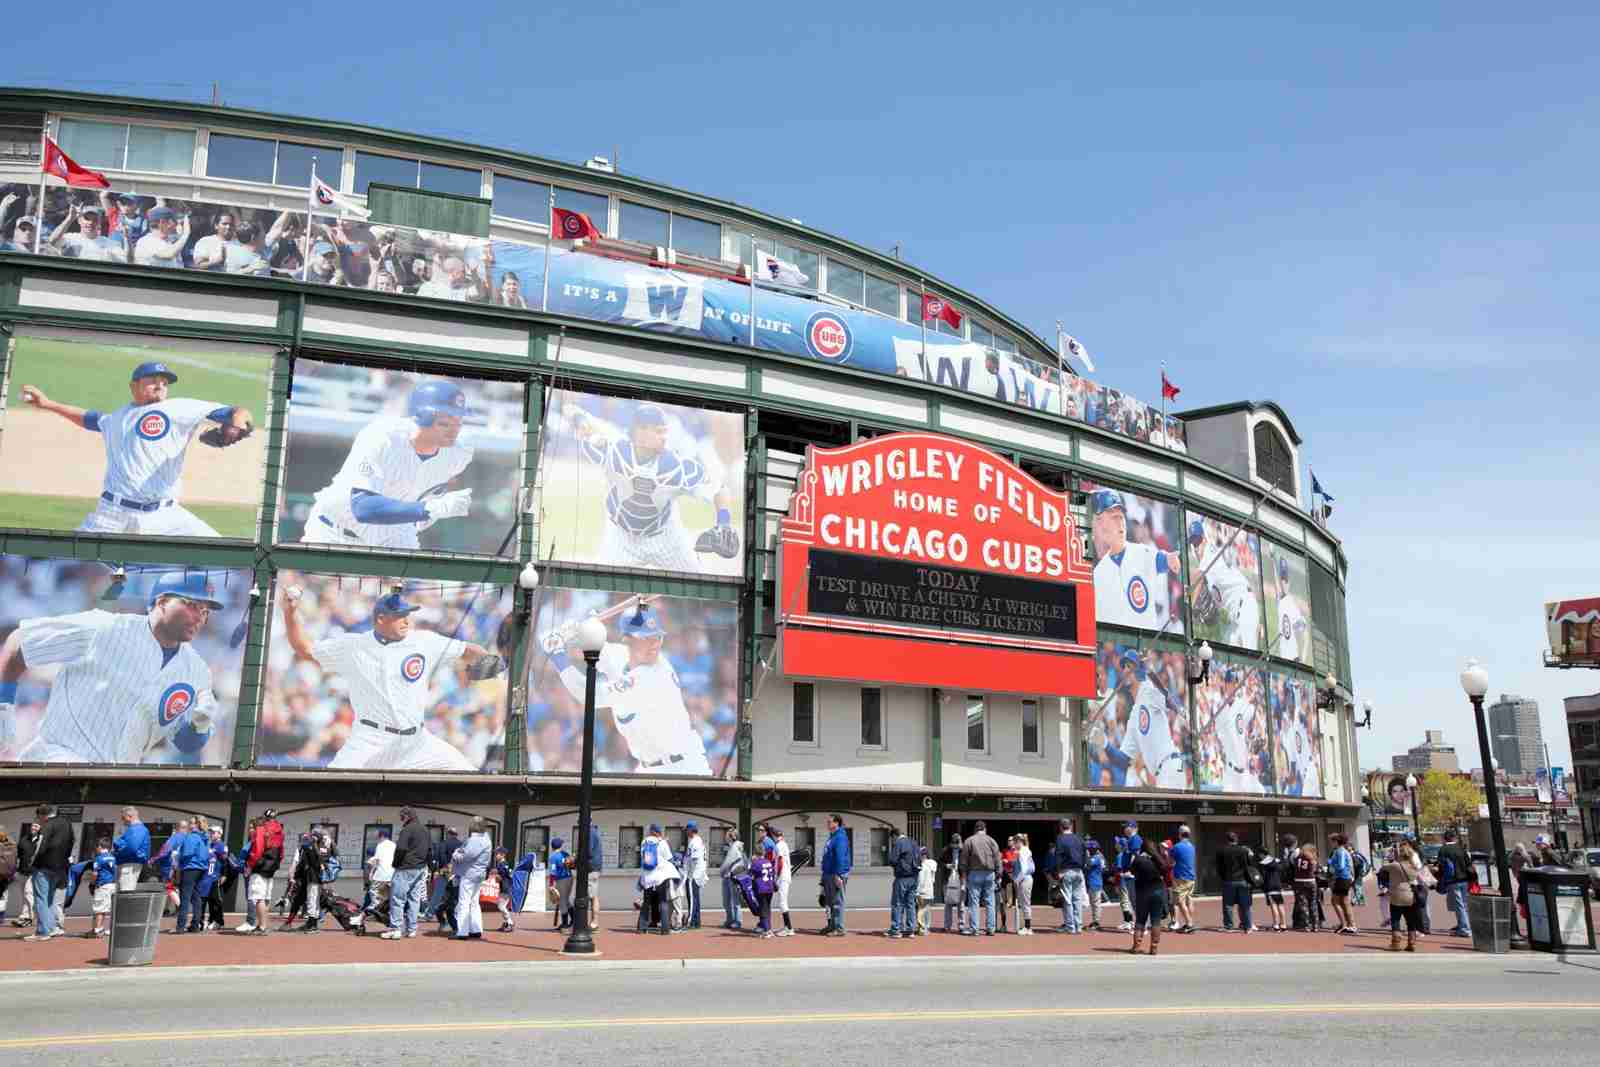 Outside Wrigley Field. (Photo by Kubrak78 / Getty Images)